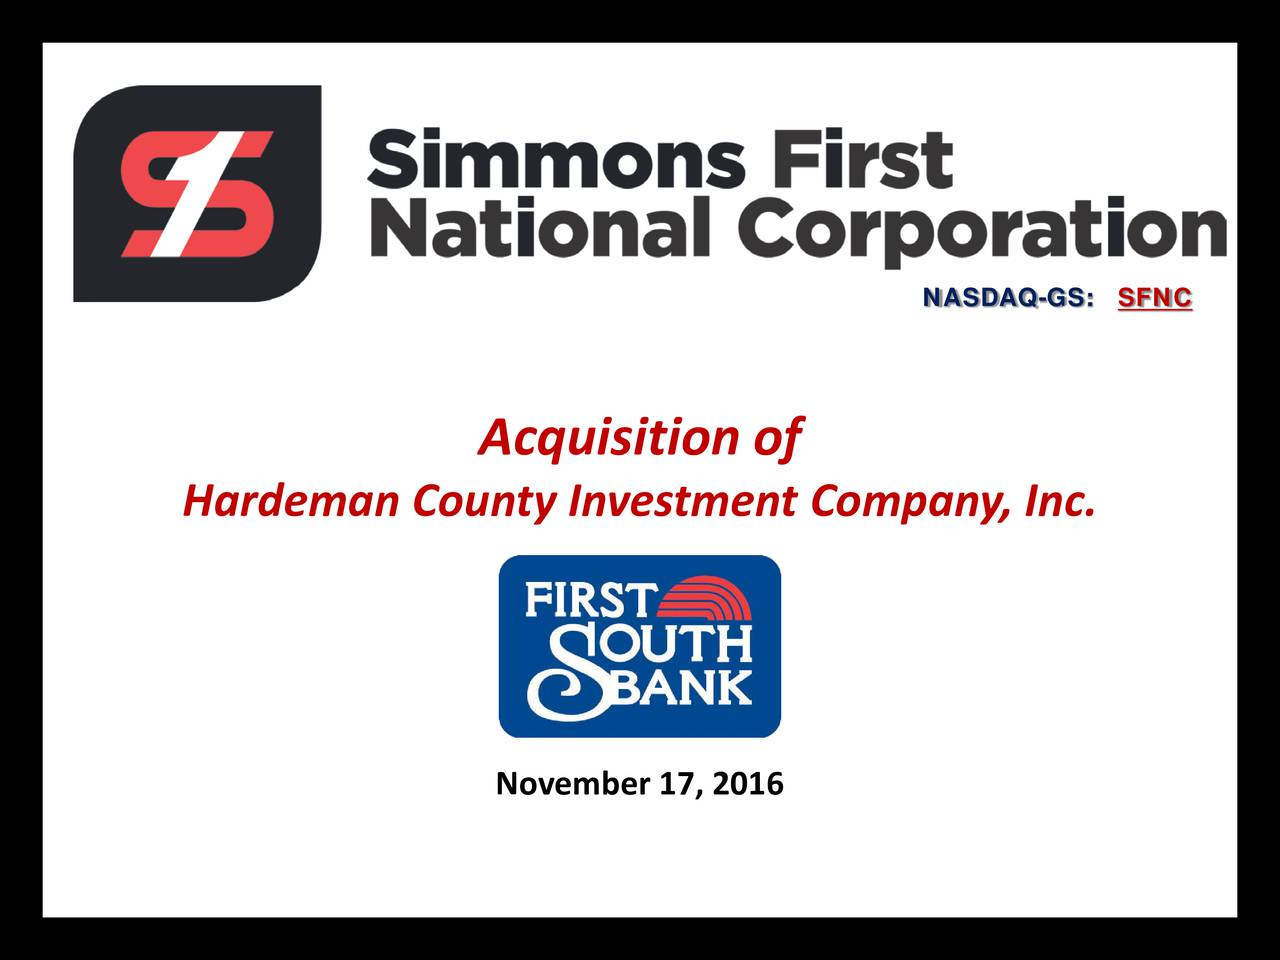 Acquisition of Hardeman County Investment Company, Inc. November 17, 2016